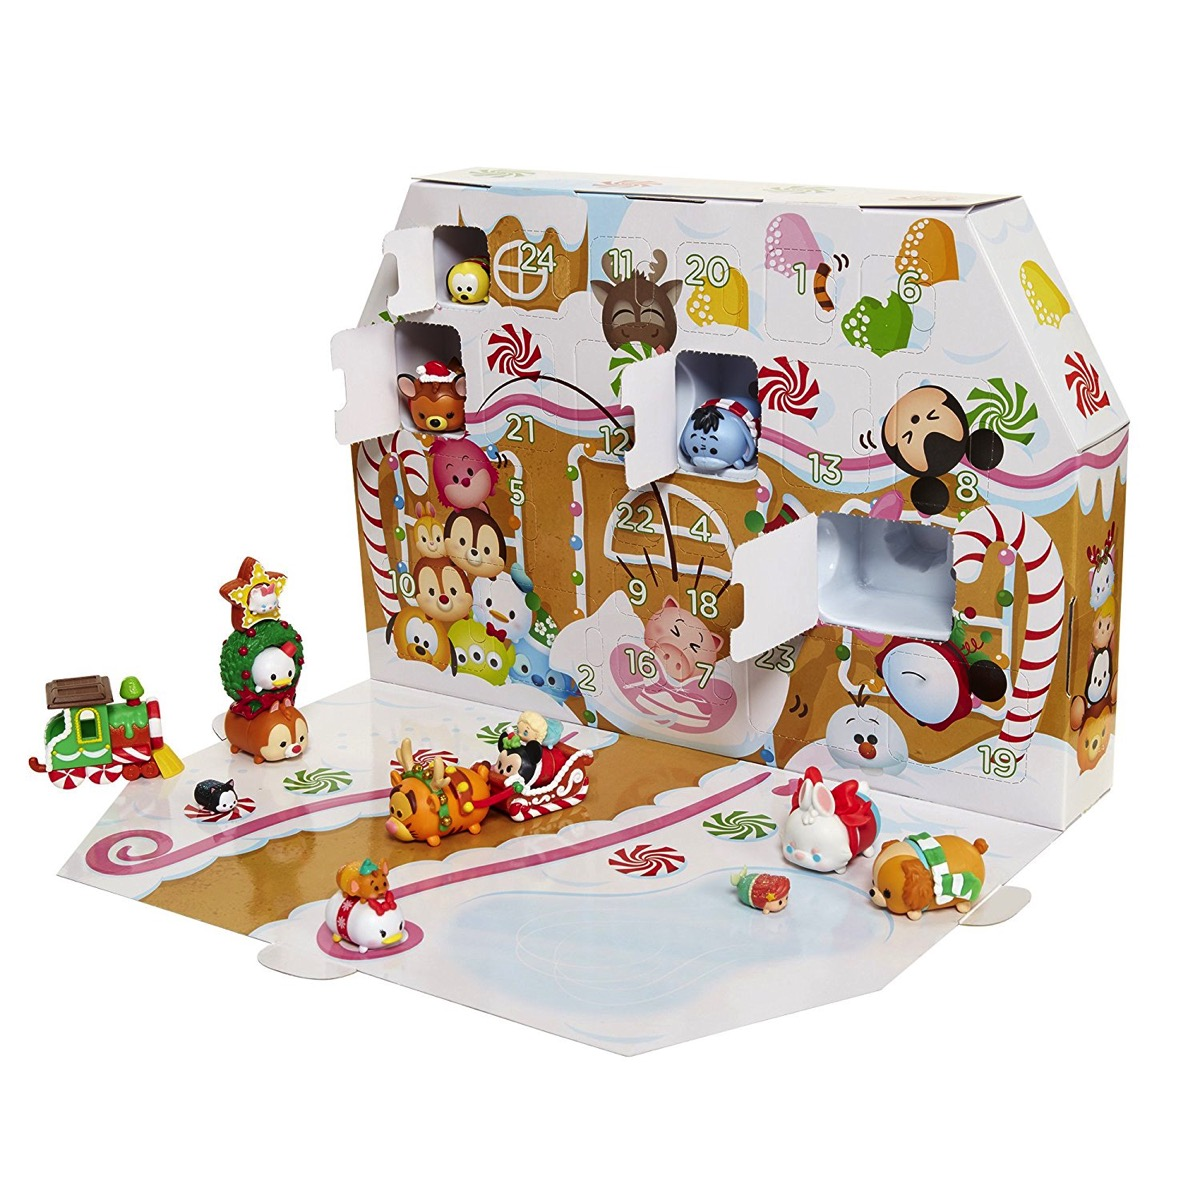 TsumTsum advent calendar